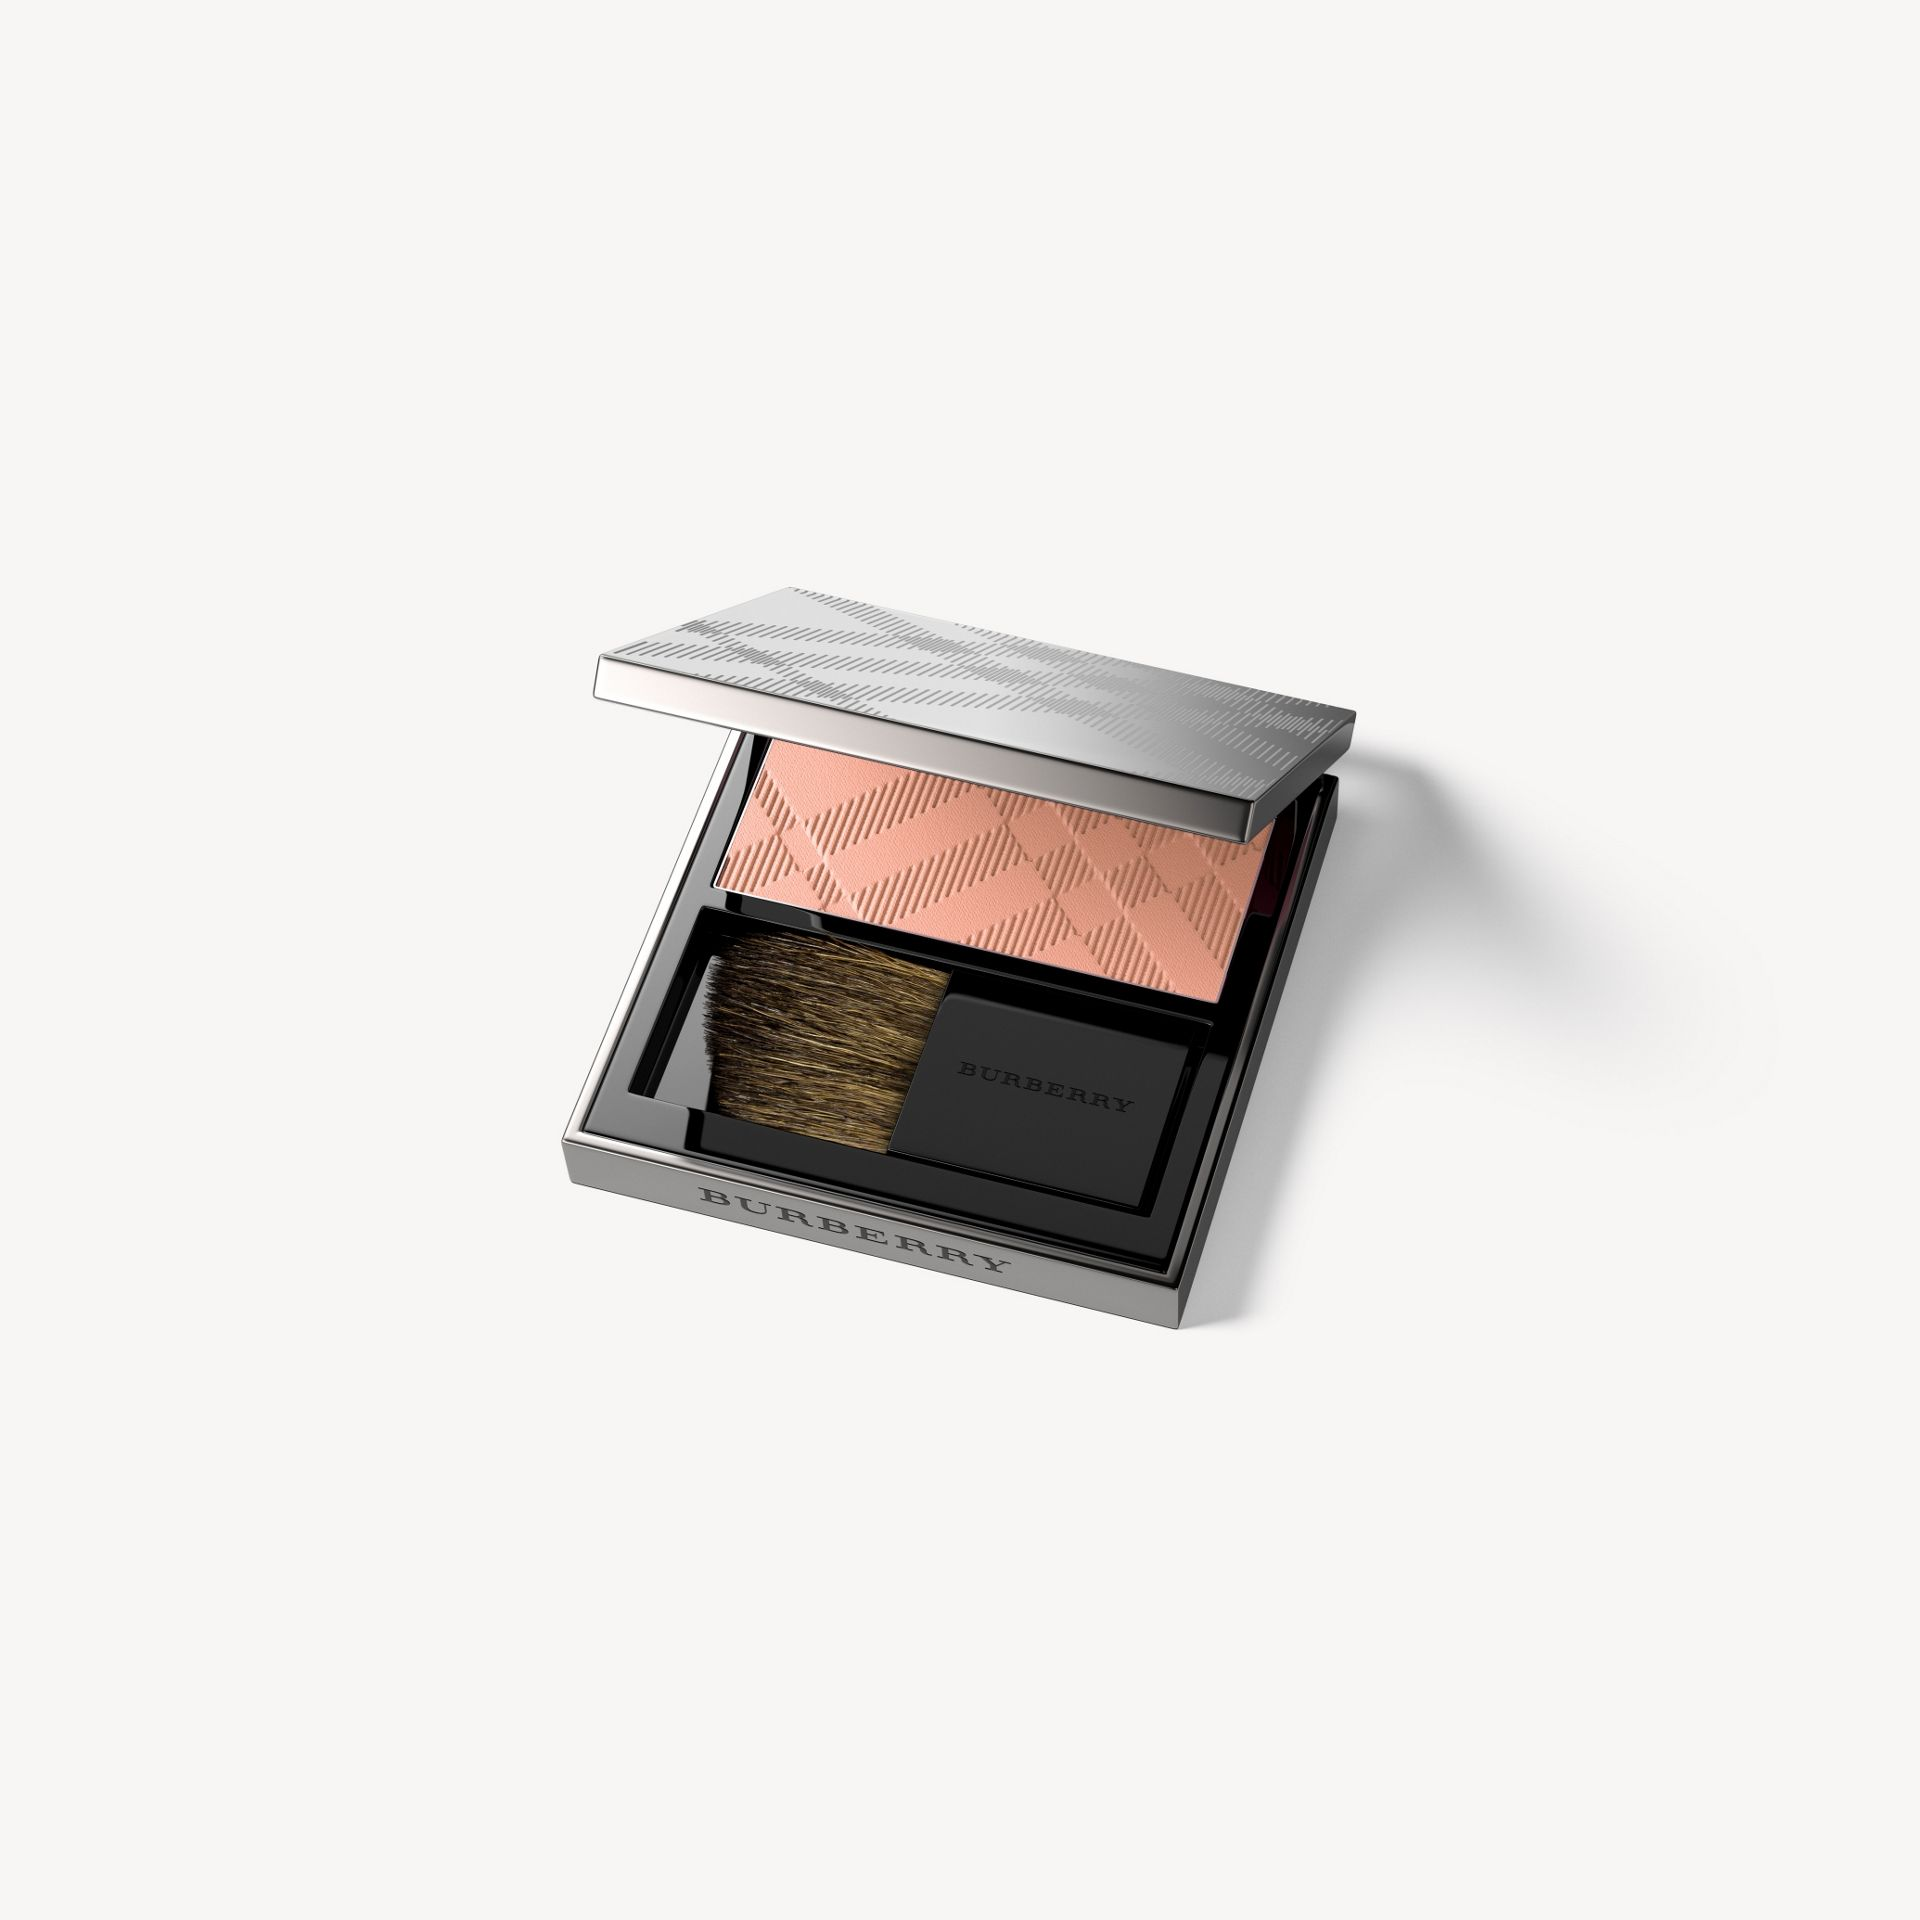 Румяна Light Glow, Tangerine Blush № 06 (№) - Для женщин | Burberry - изображение 0